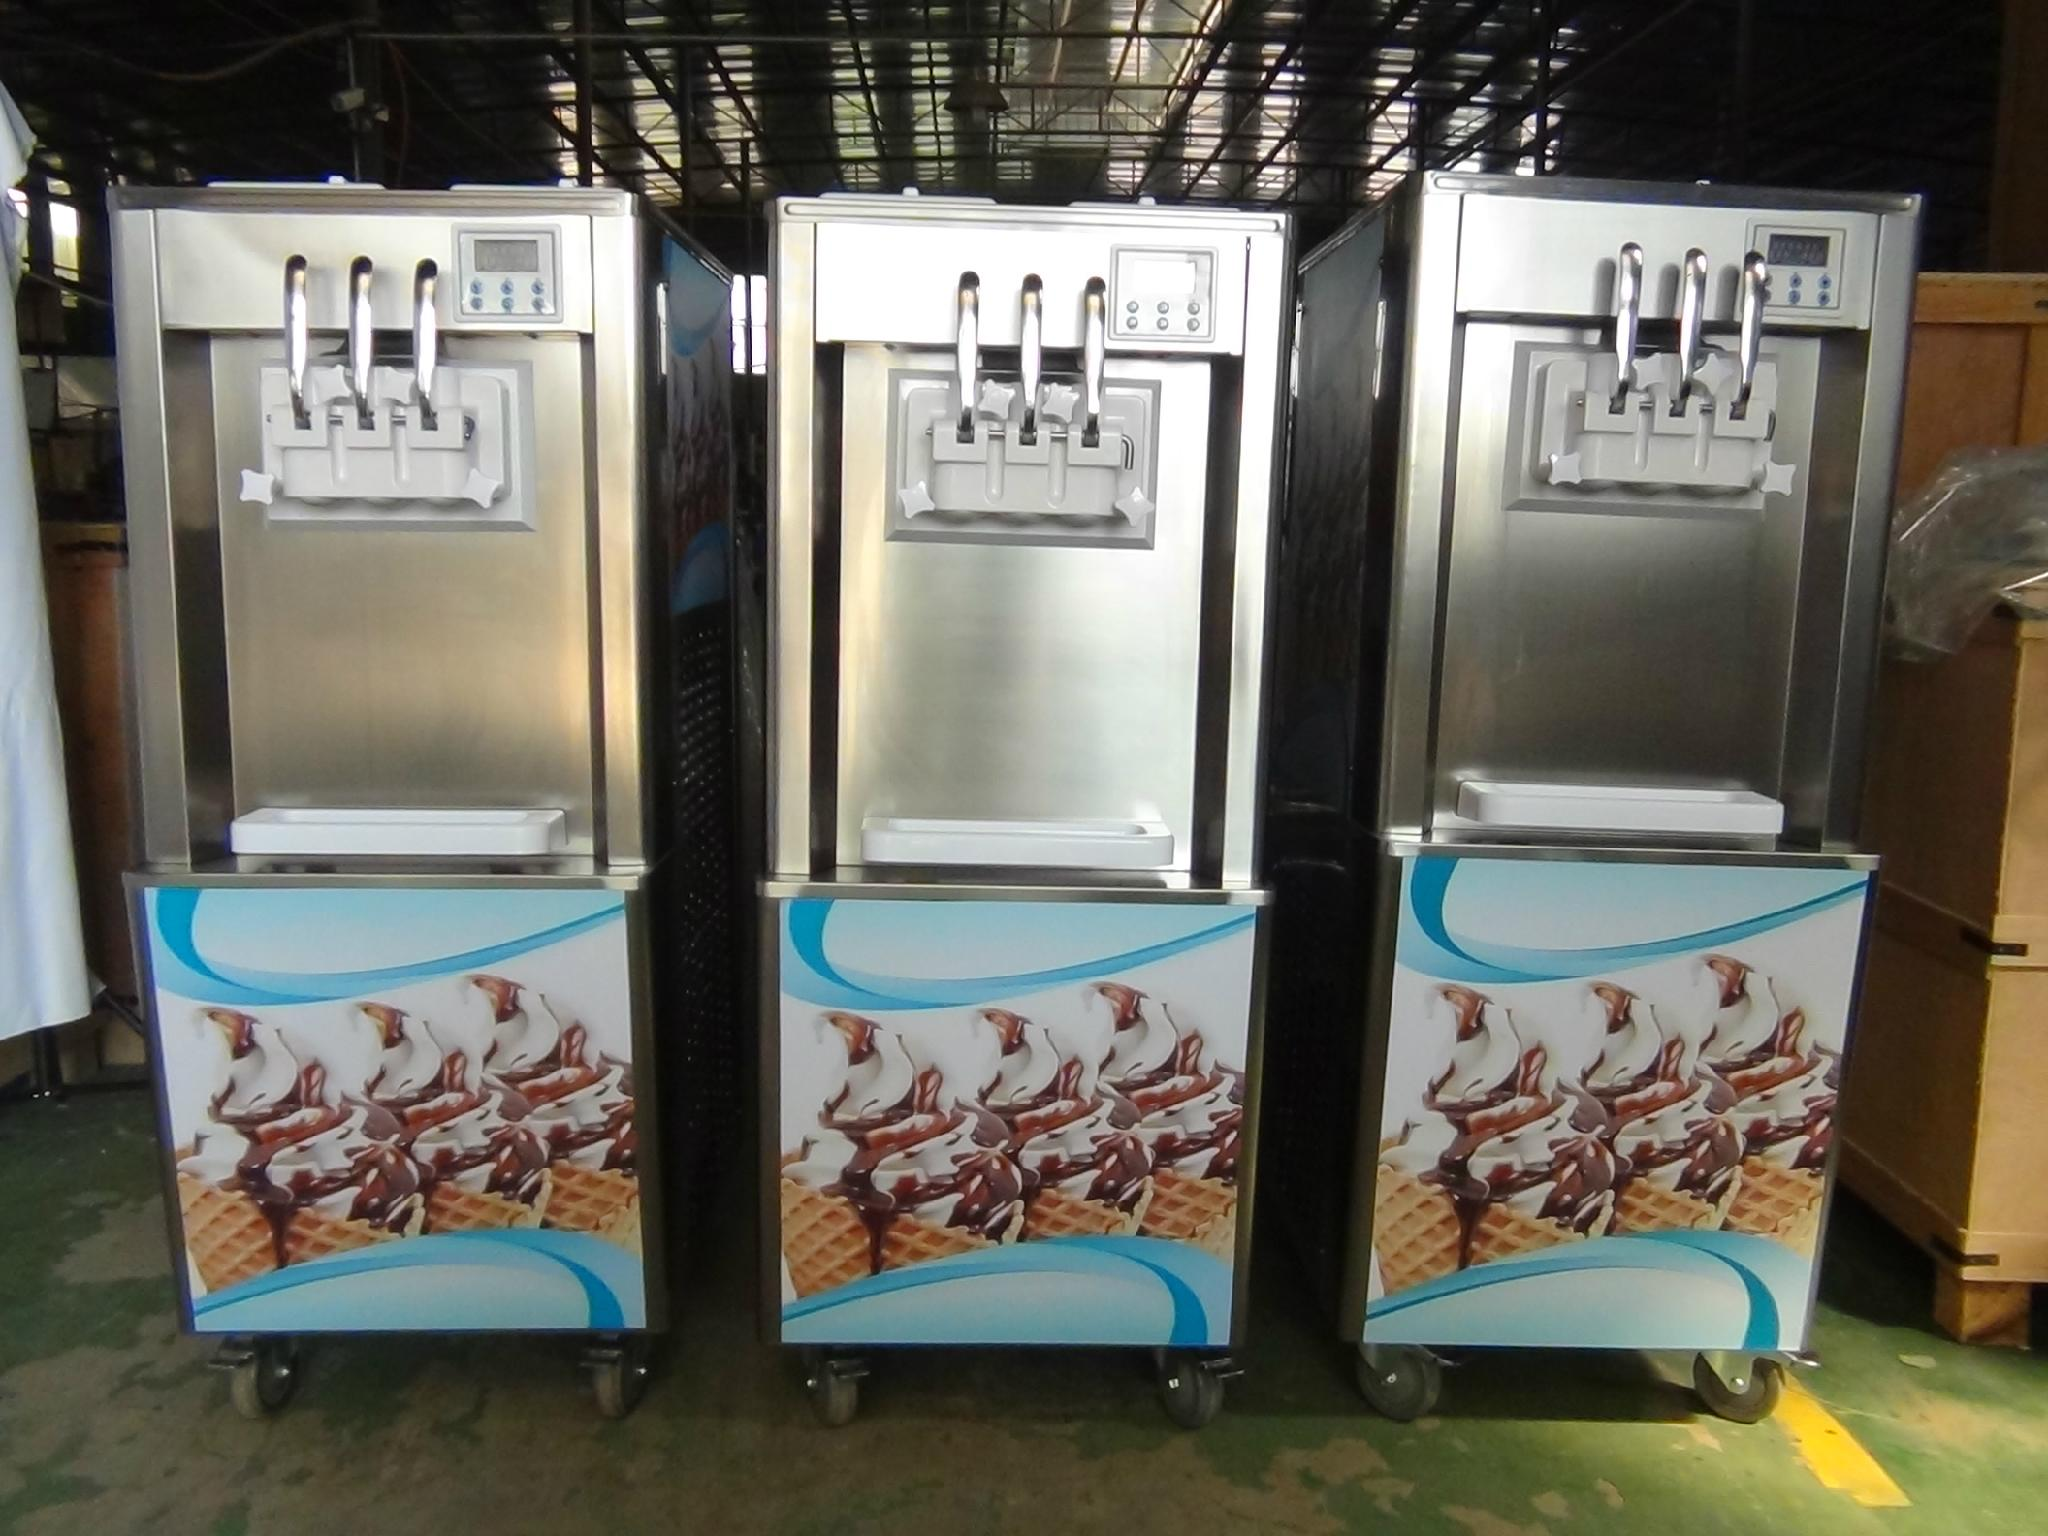 China Bar Top Softy Cone Ice Cream Maker Ice-cream Machine For Rental Business